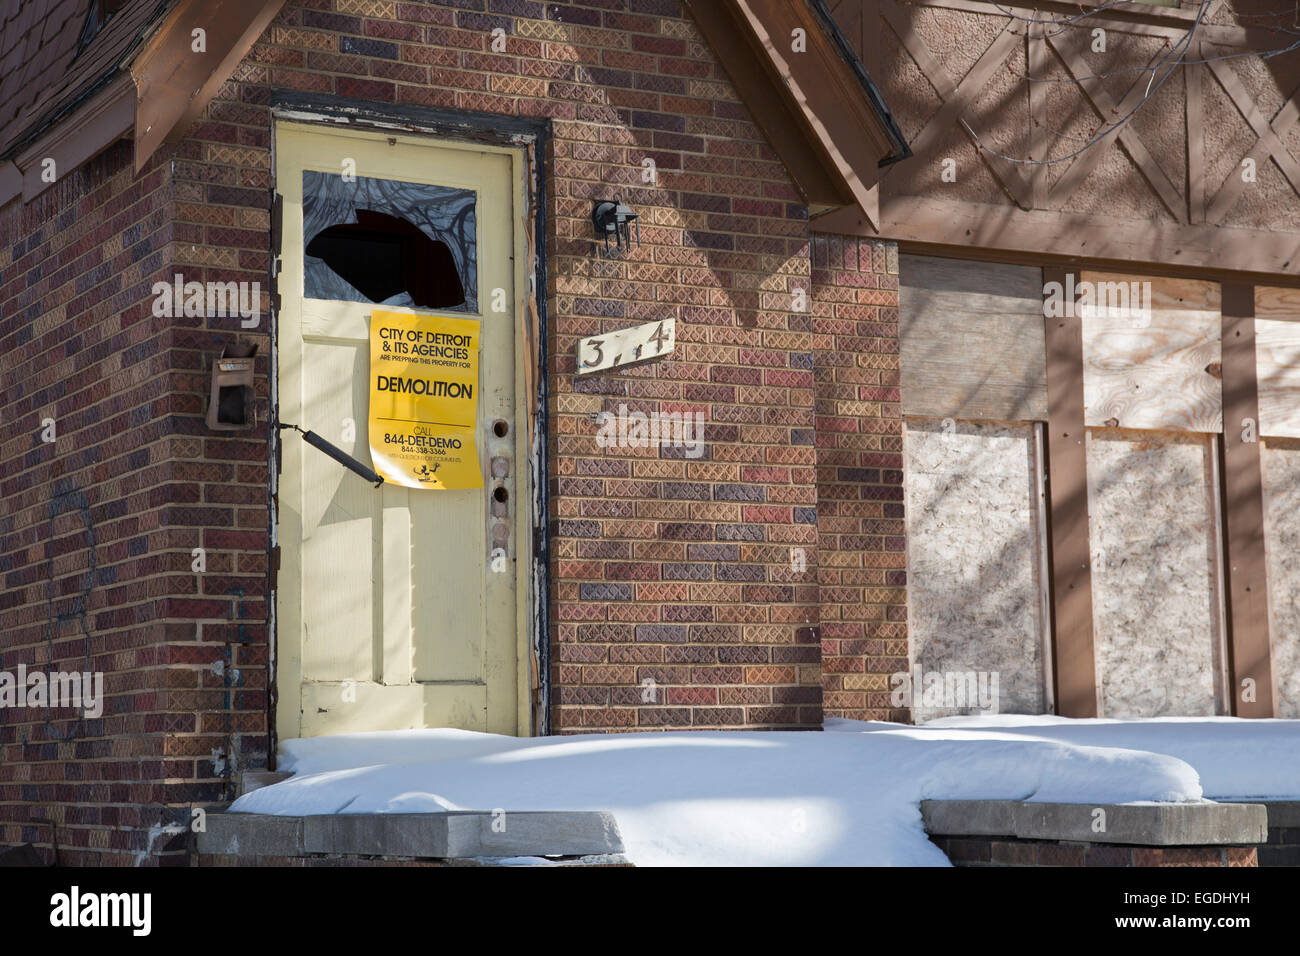 Detroit, Michigan - A house prepared for demolition. - Stock Image